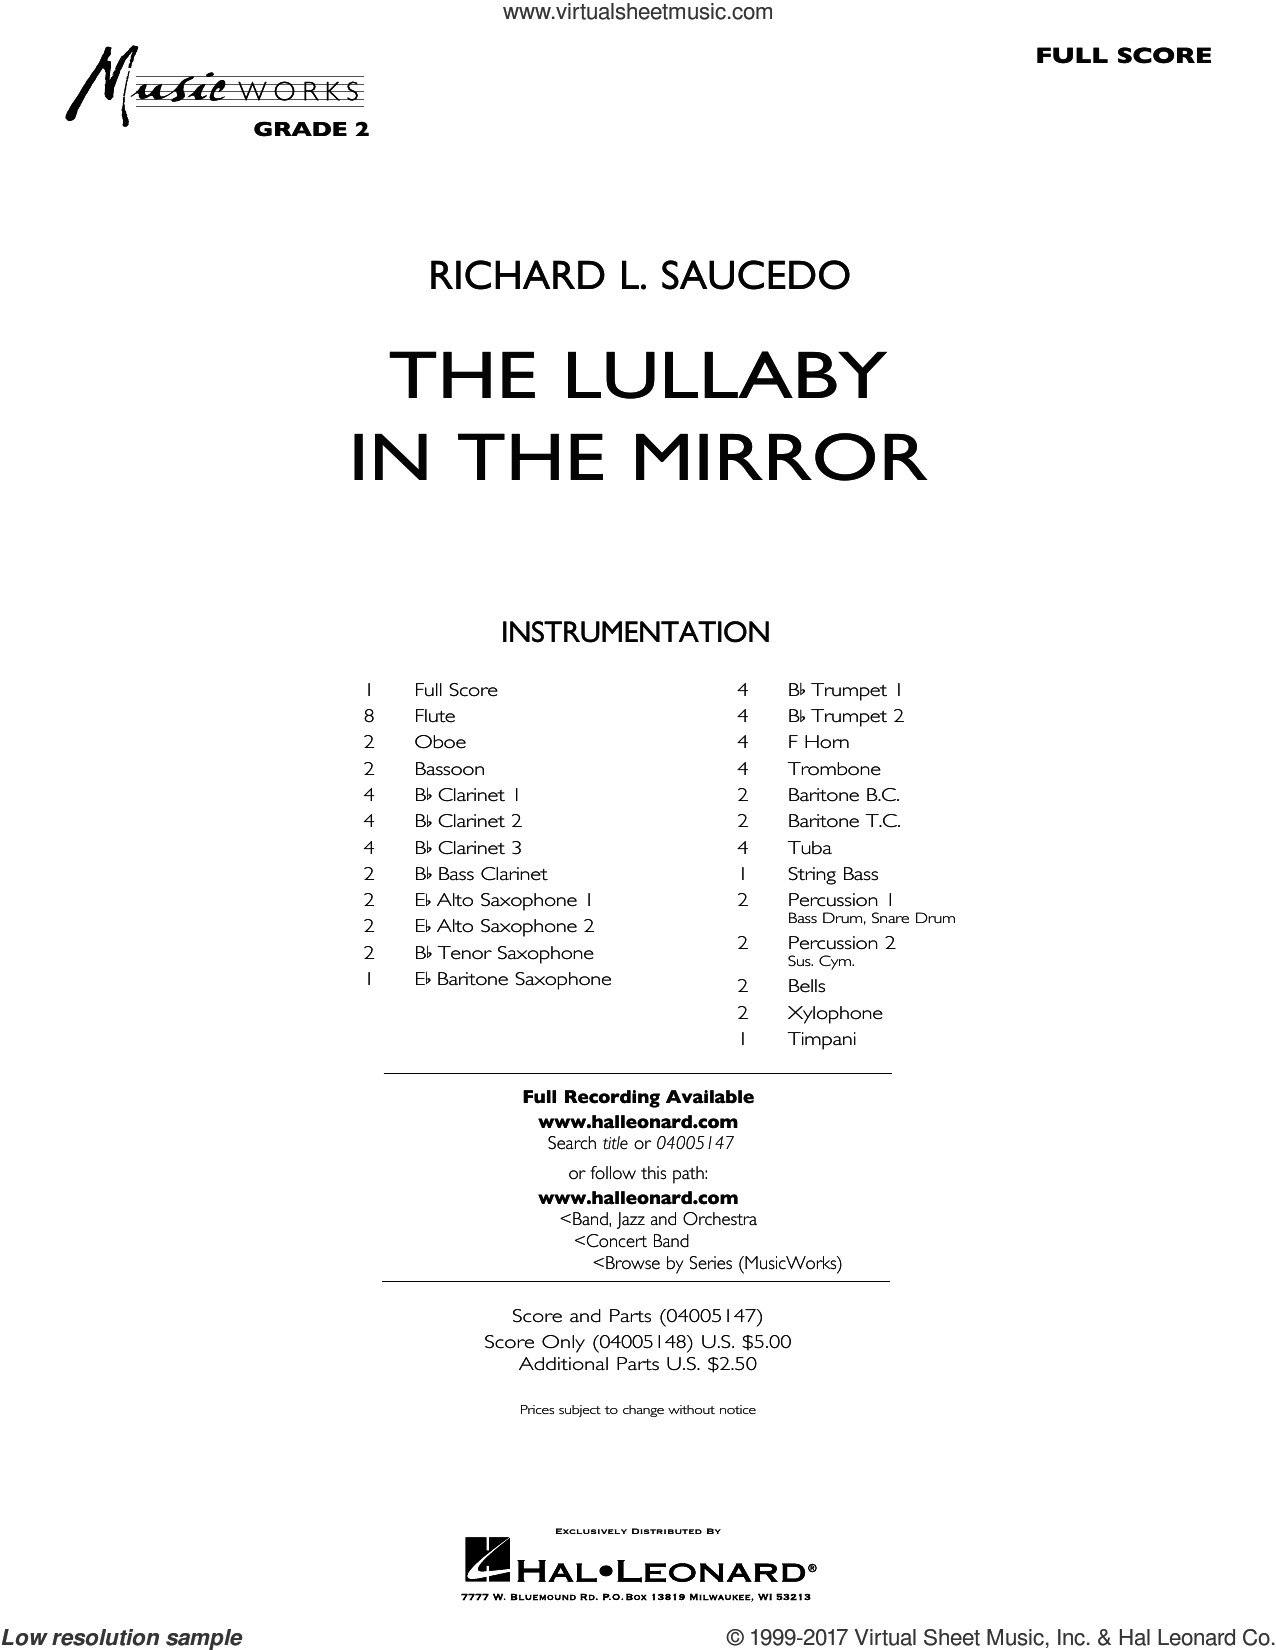 The Lullaby in the Mirror (COMPLETE) sheet music for concert band by Richard L. Saucedo, intermediate skill level